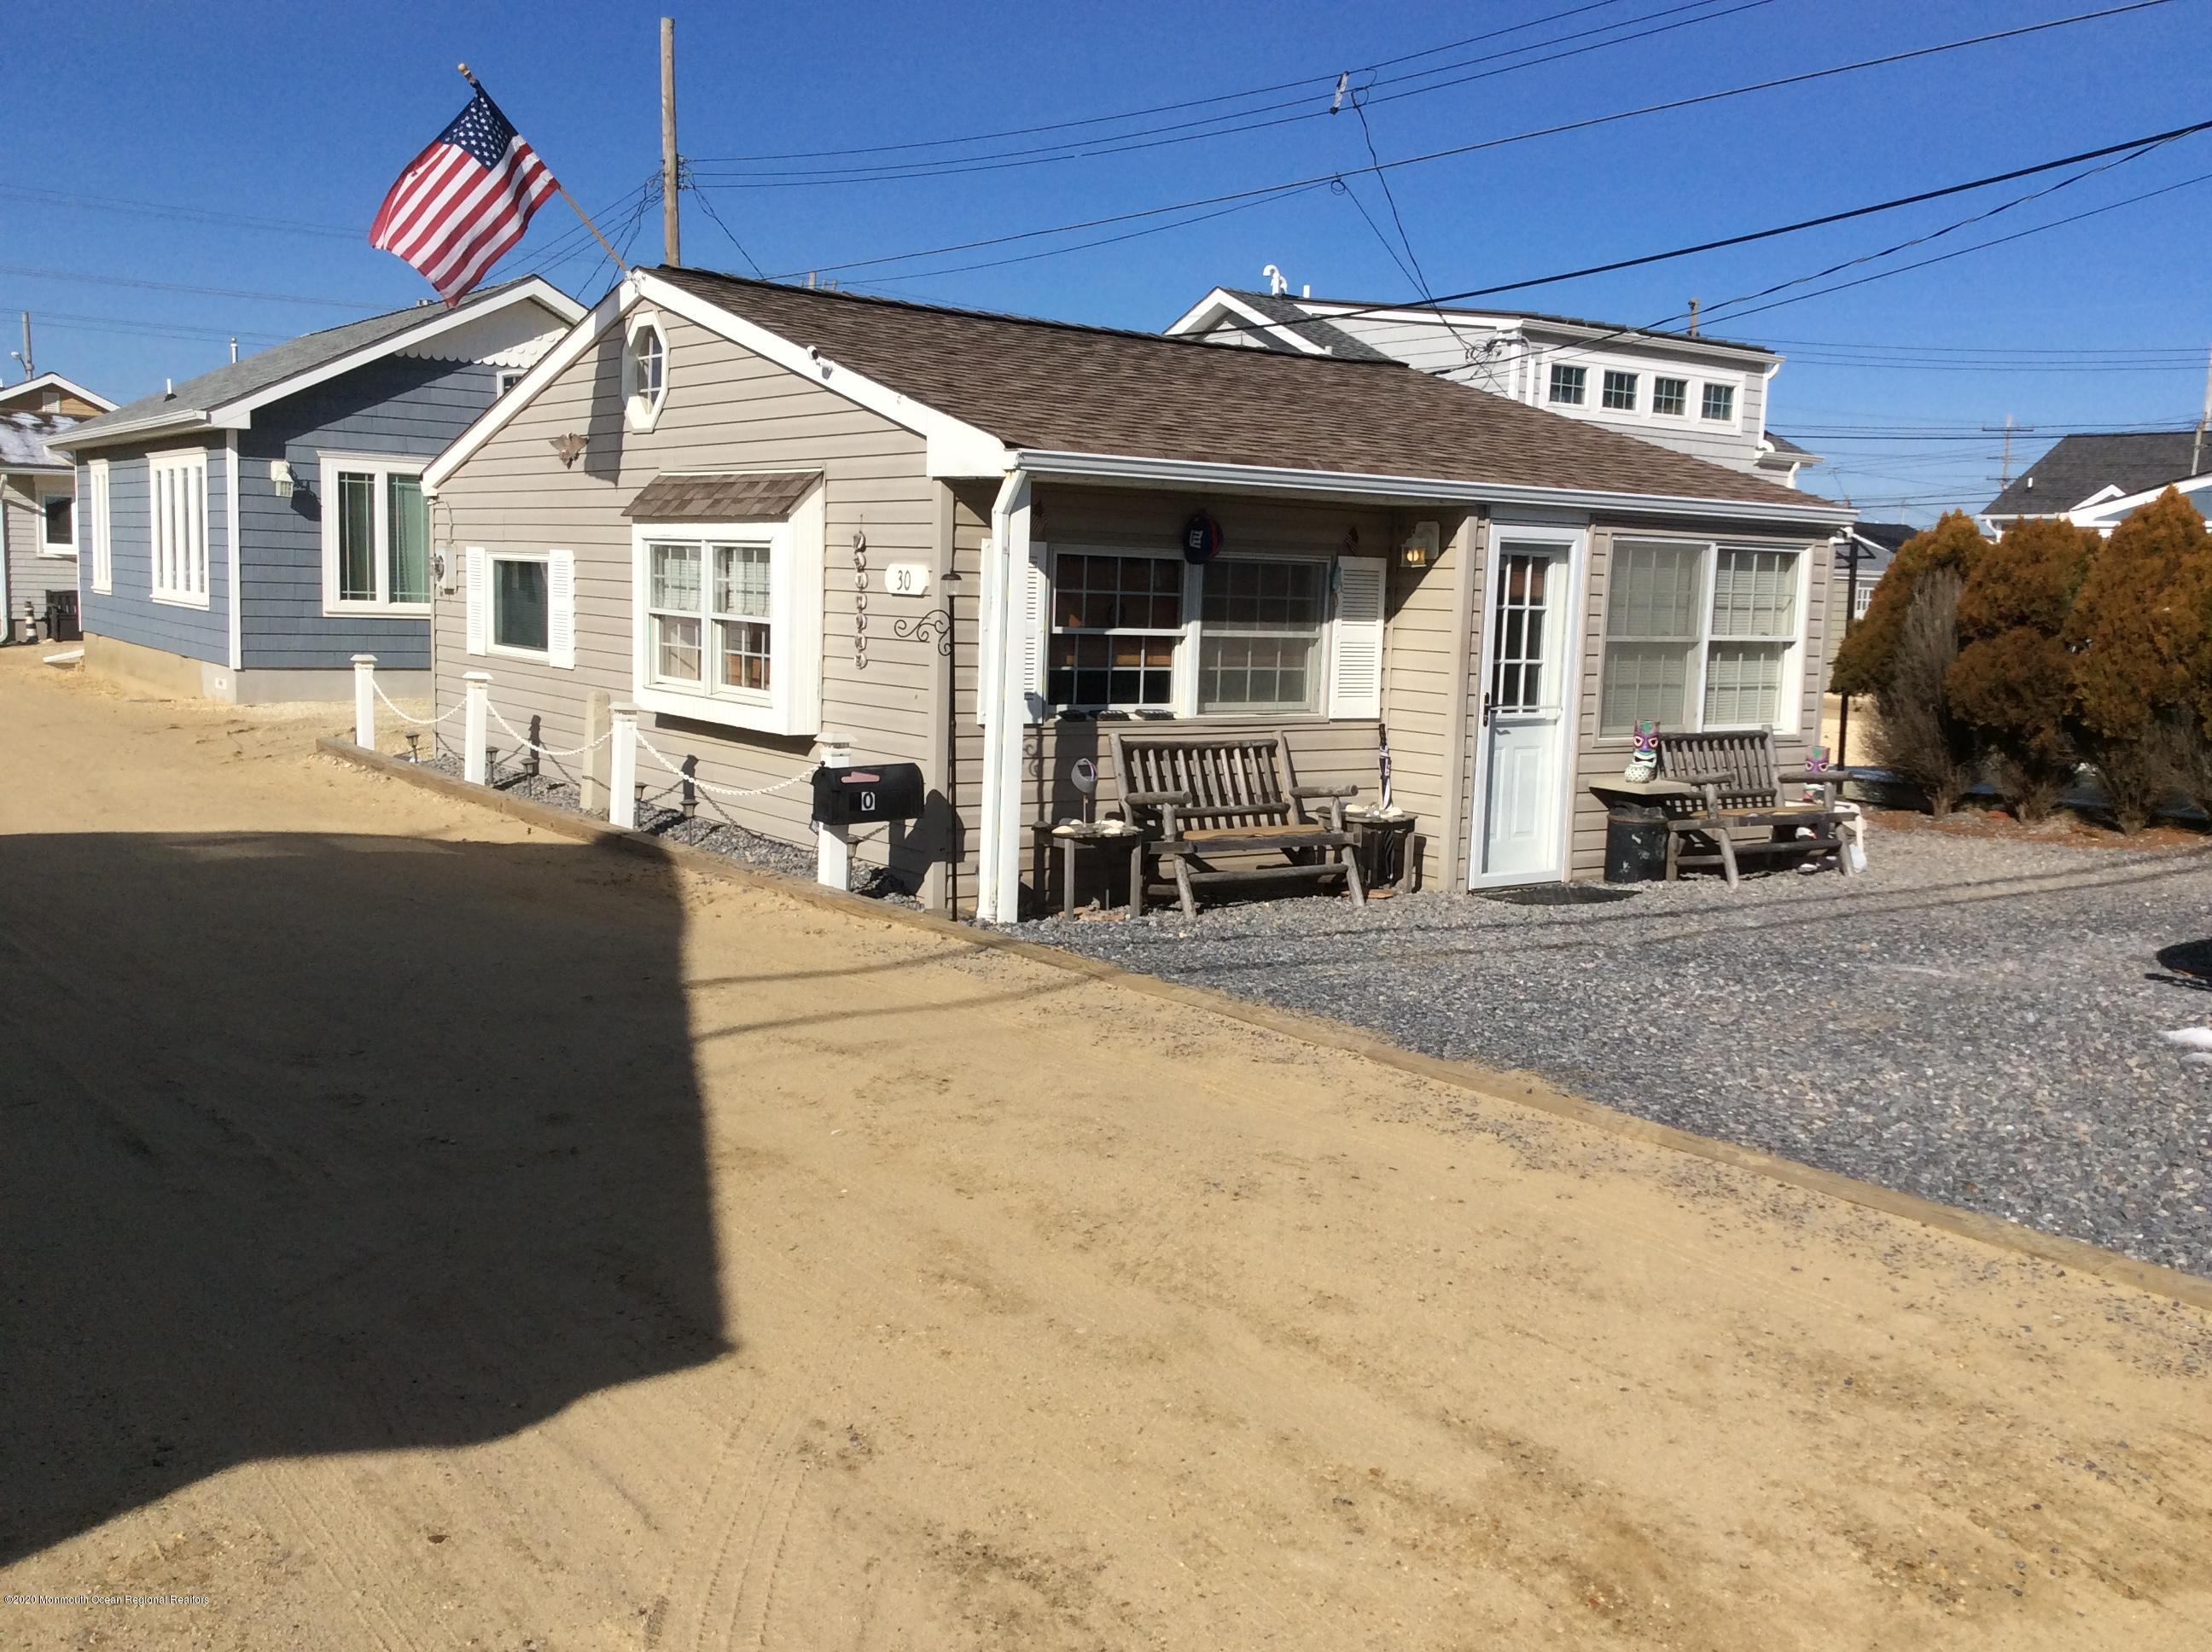 Photo of 30 E Cormorant Way, Lavallette, NJ 08735